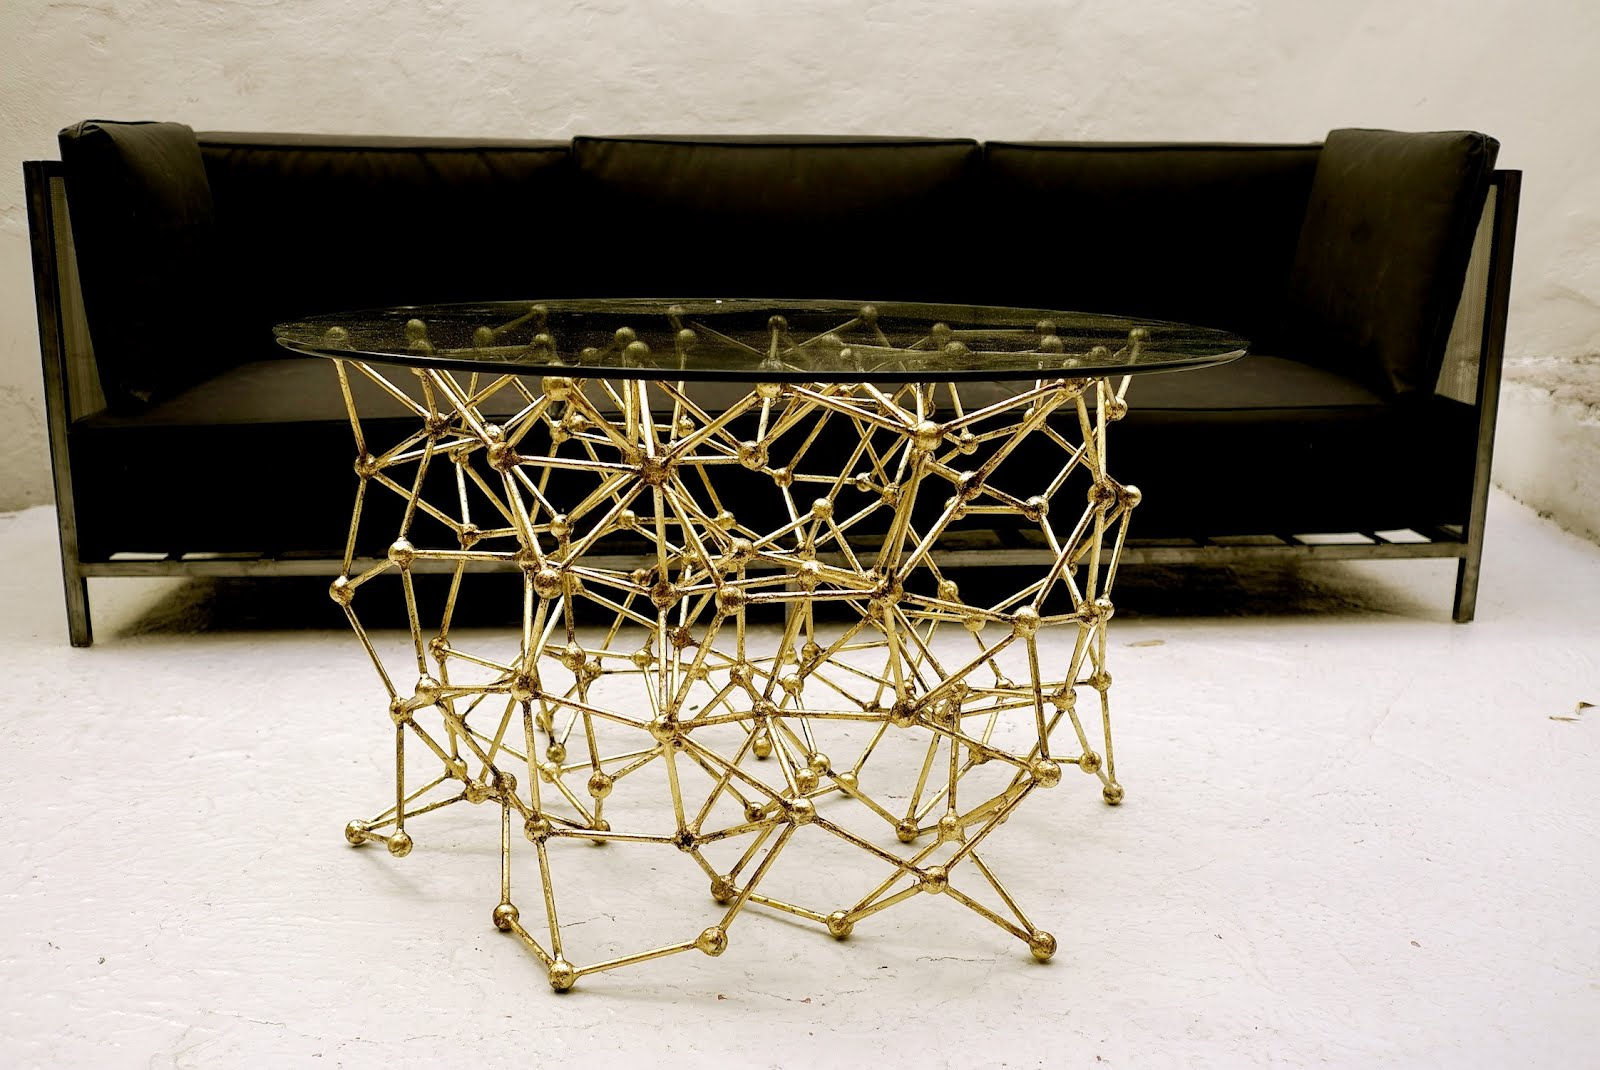 Molecular Coffee Table With Gold Leaf Finish In Front Of A Black Sofa